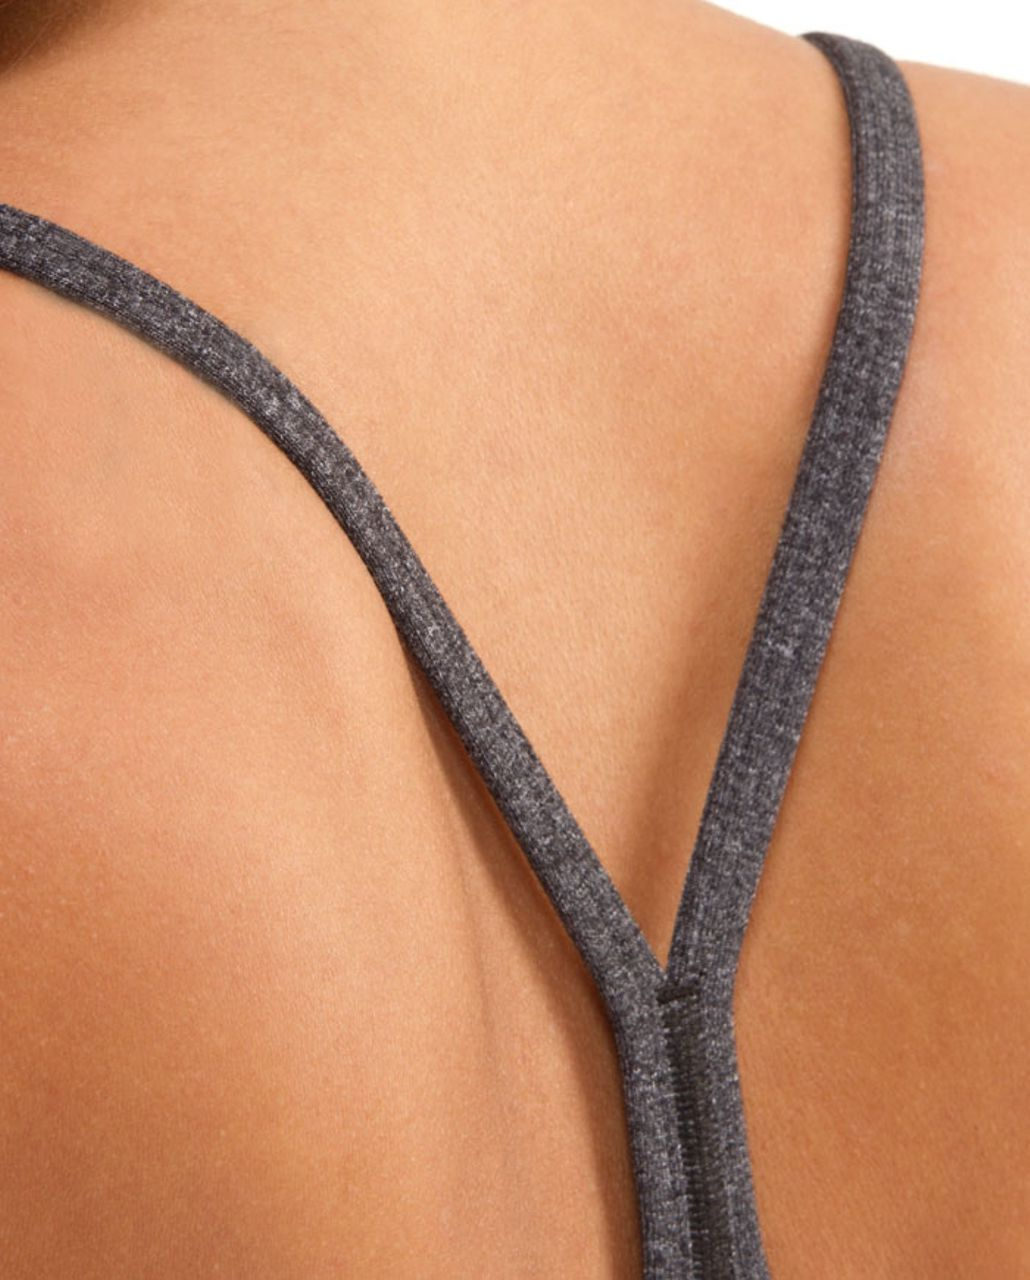 Lululemon Power Y Tank - Heathered Black